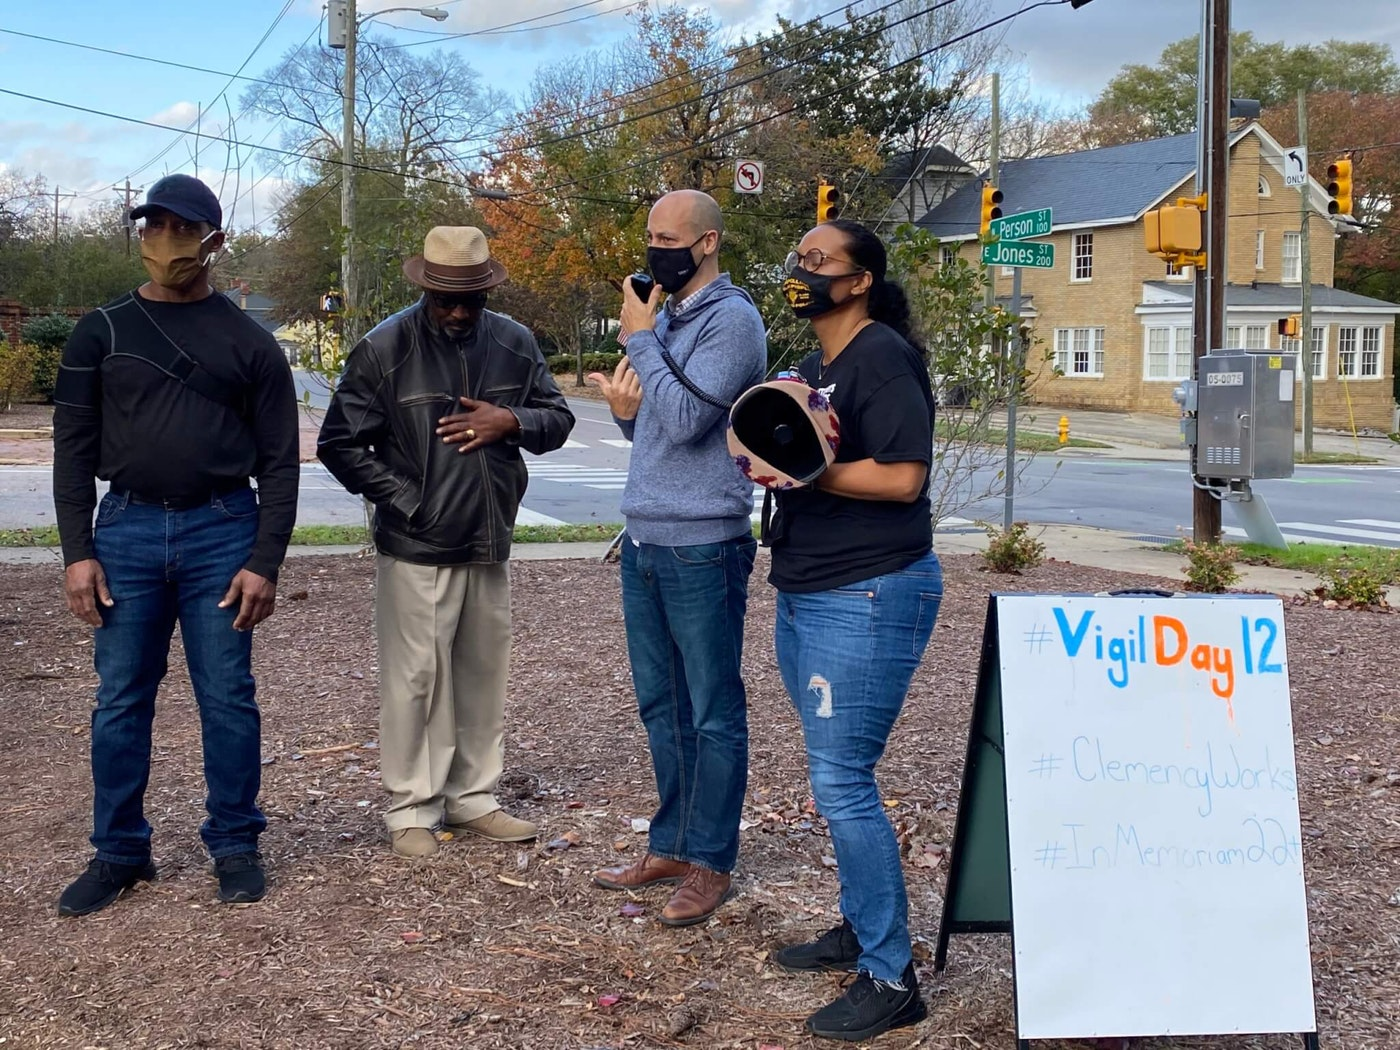 Jamie Lau, center, speaks in a vigil calling on Gov. Roy Cooper to act on pardon and clemency requests with two of his clients released from prison after serving long sentences next to him, Calrutha Johnson  and Ronnie Long. Kristie Puckett-Willliams of the ACLU of NC is on the right. (Image courtesy of Melissa Boughton)